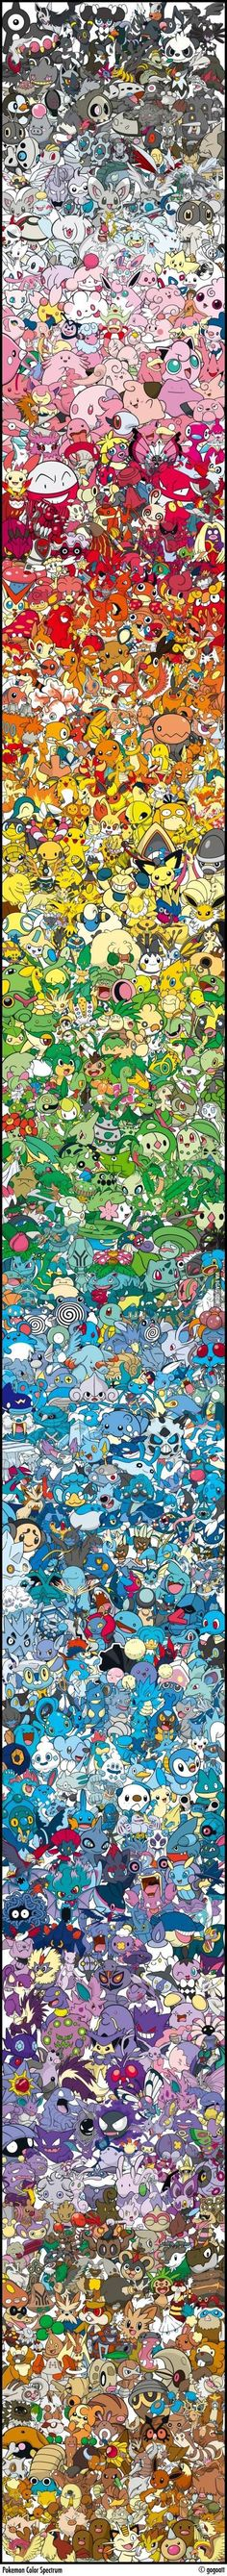 Every Single Pokémon Arranged by Color I wish this was a poster I could hang up I'm my game room.